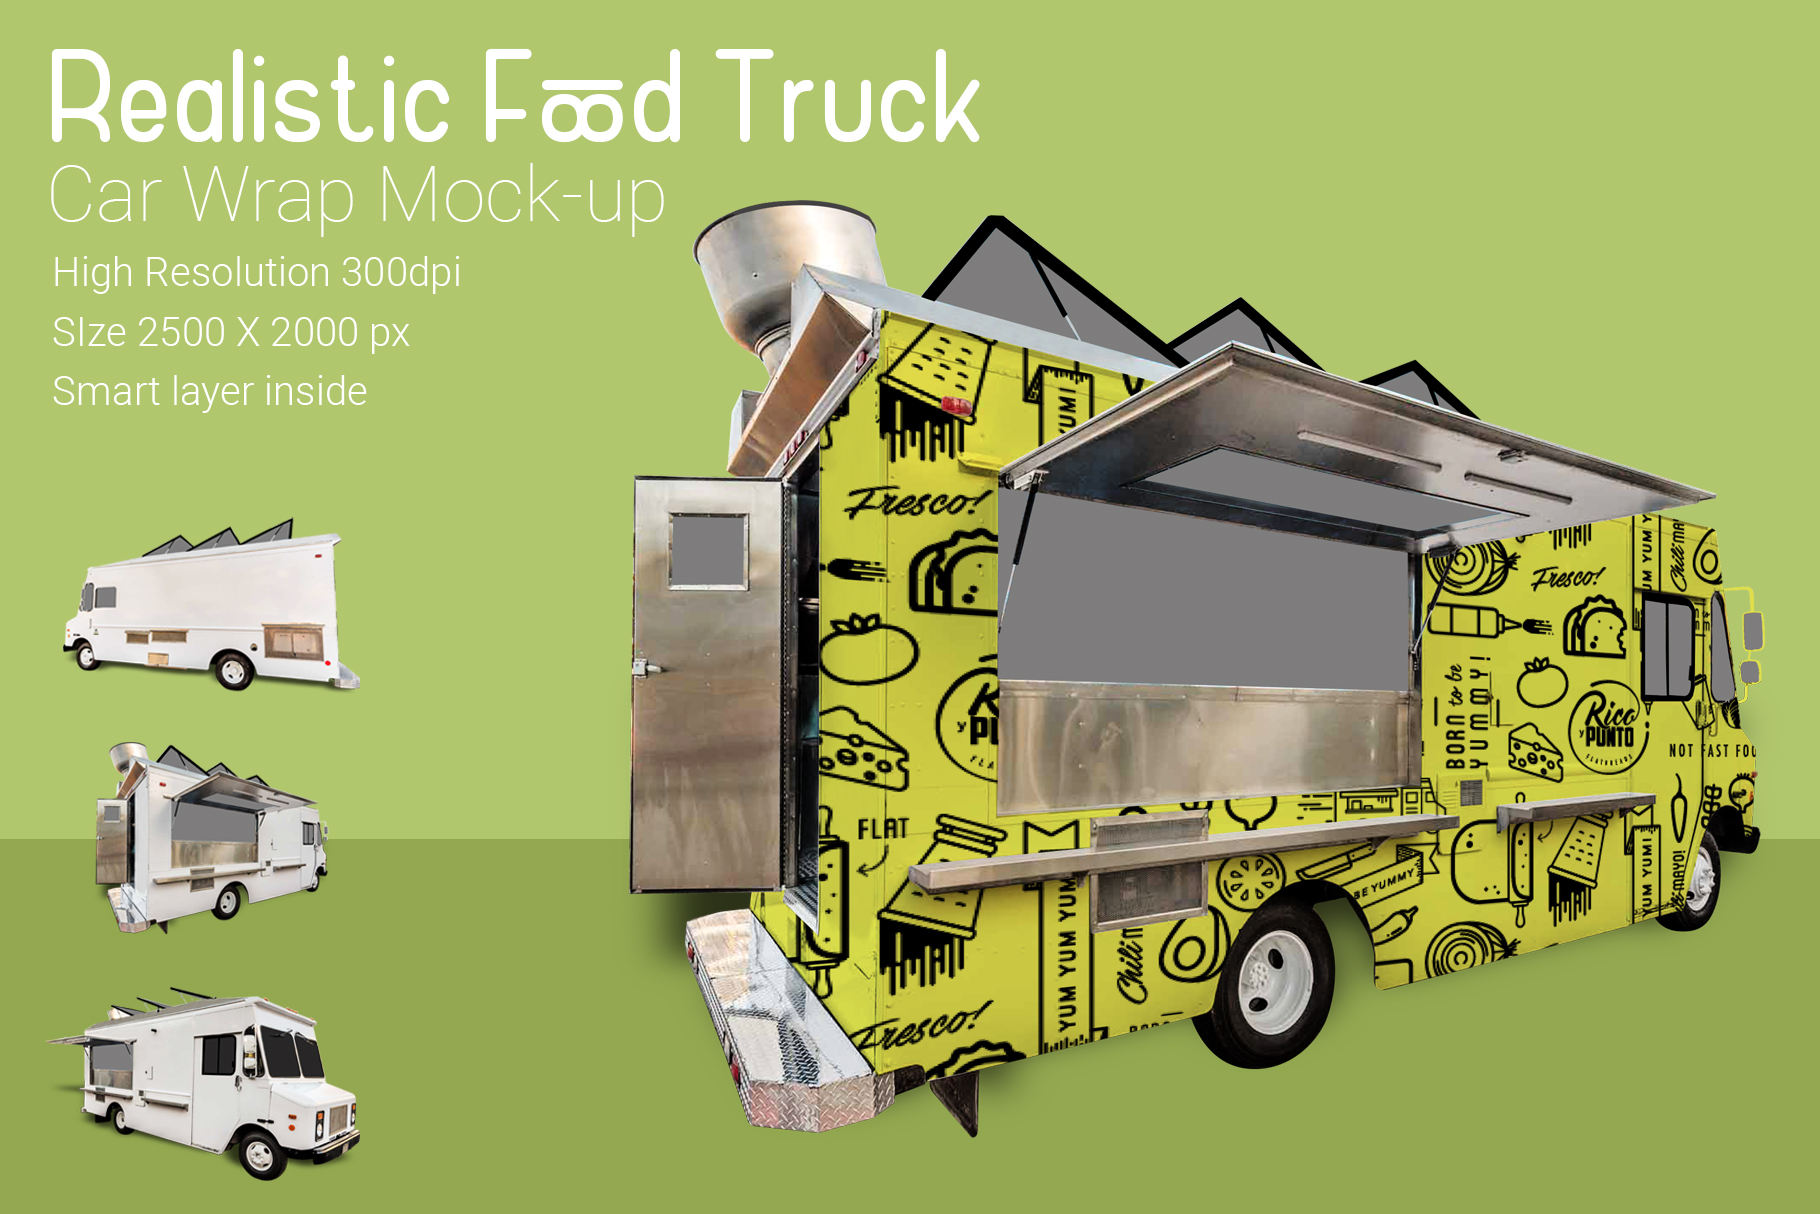 Food Truck Mock-Up example image 2